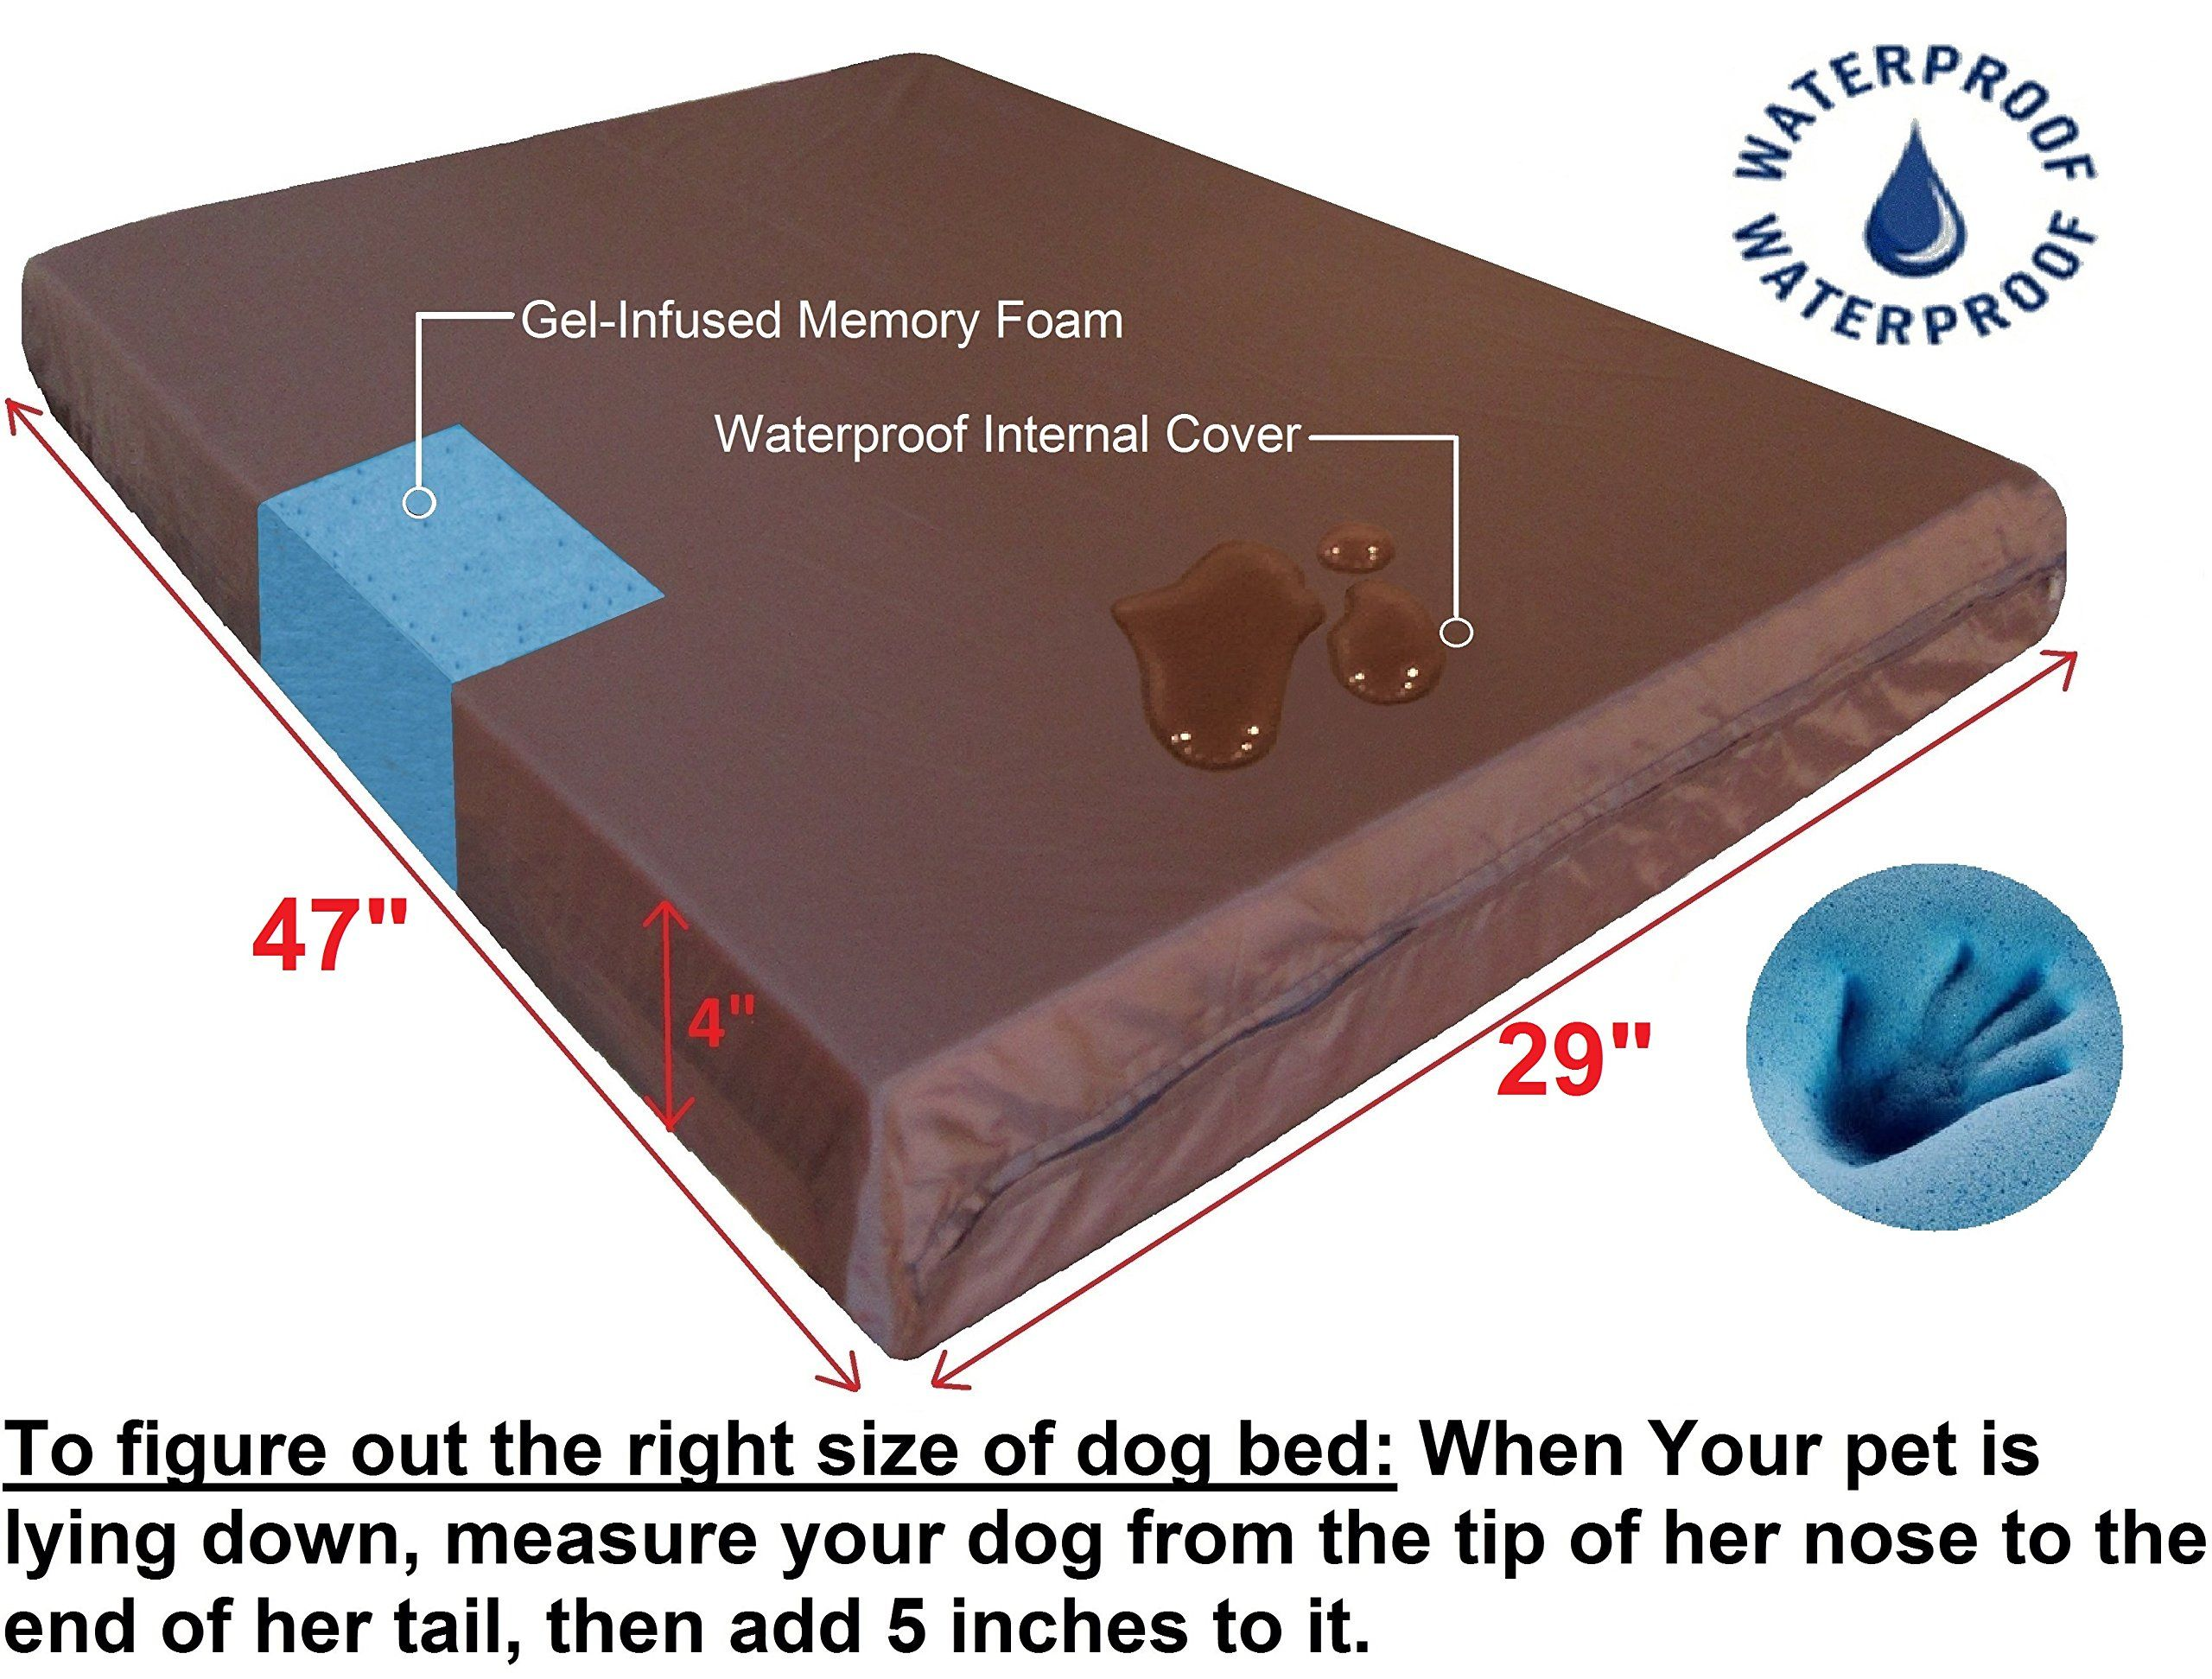 Dogbed4less Extra Large Orthopedic Cool Memory Foam Dog Bed